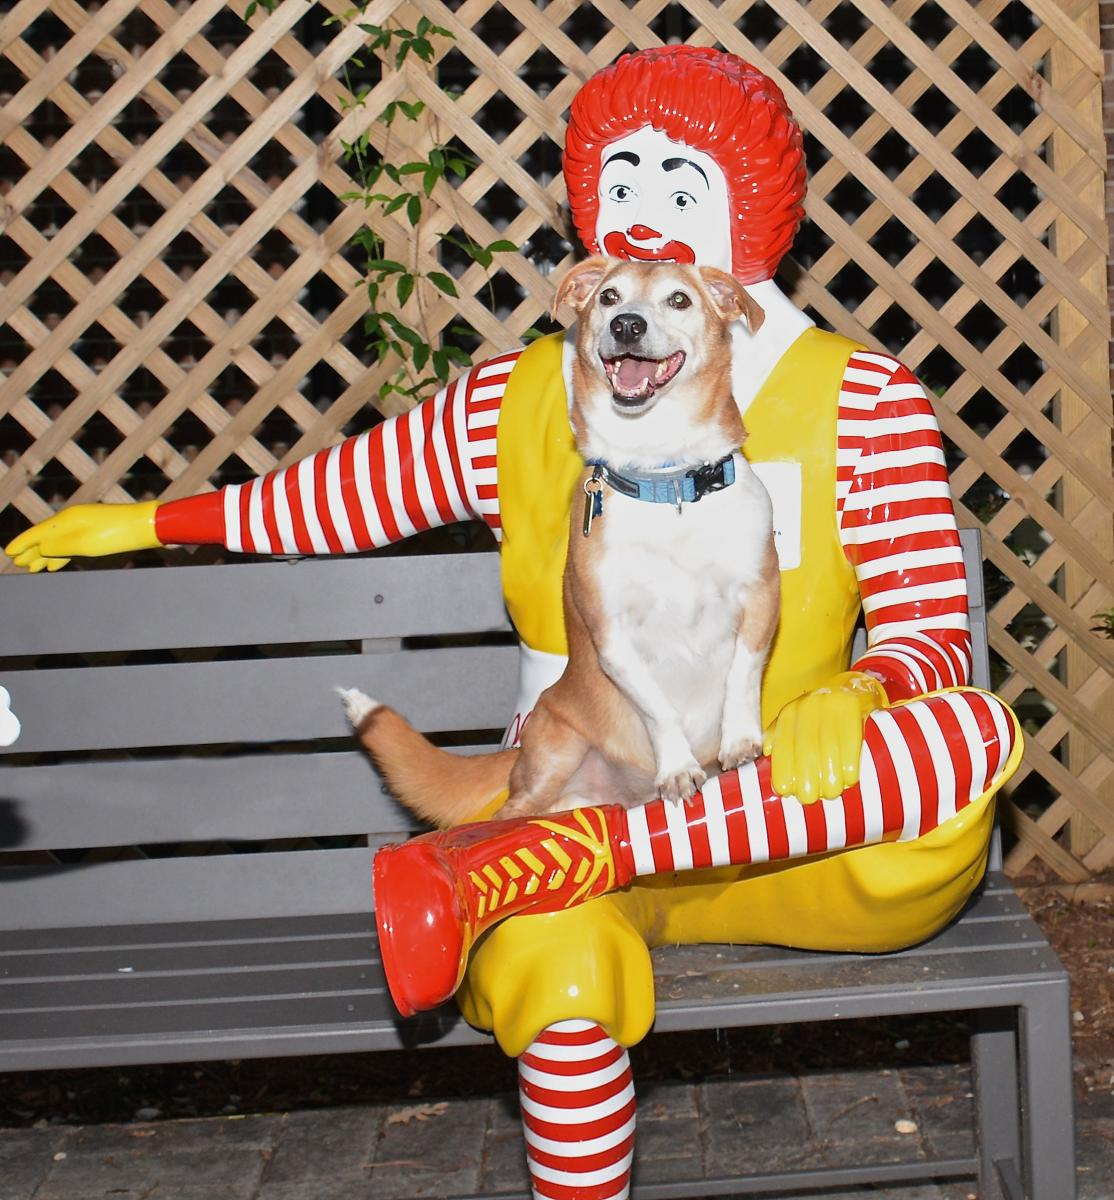 While visiting patients at the Ronald McDonald House in Durham, Tipton, a Jack Russel terrier mix, poses on the lap of a Ronald McDonald statue located in the garden. Tipton, who visited children being treated at Duke, is in the process of training to become a Pets At Duke therapy dog.